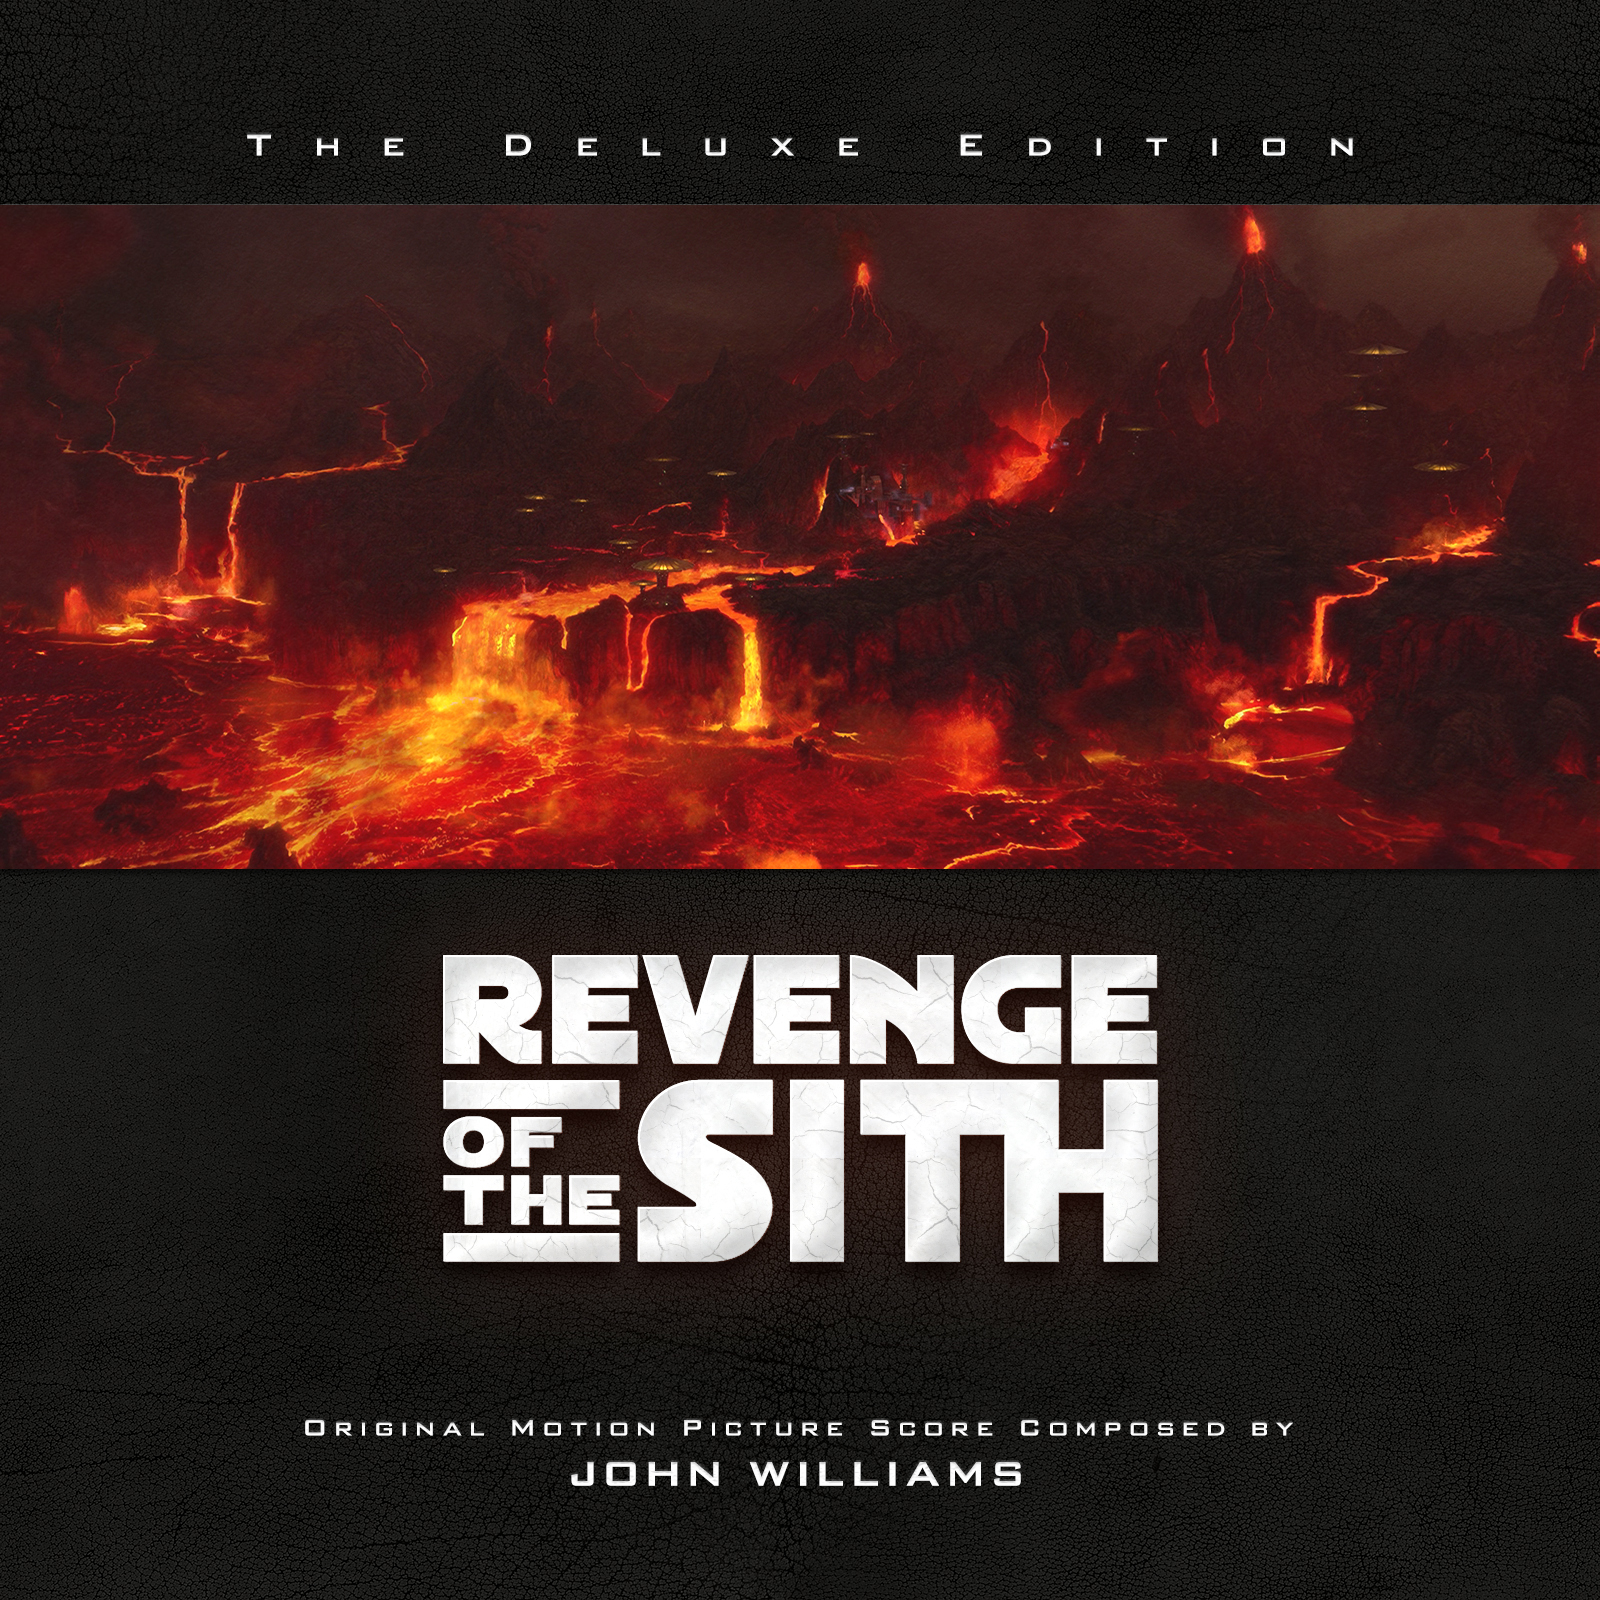 Star Wars Episode Iii Revenge Of The Sith The Deluxe Edition Hqcovers